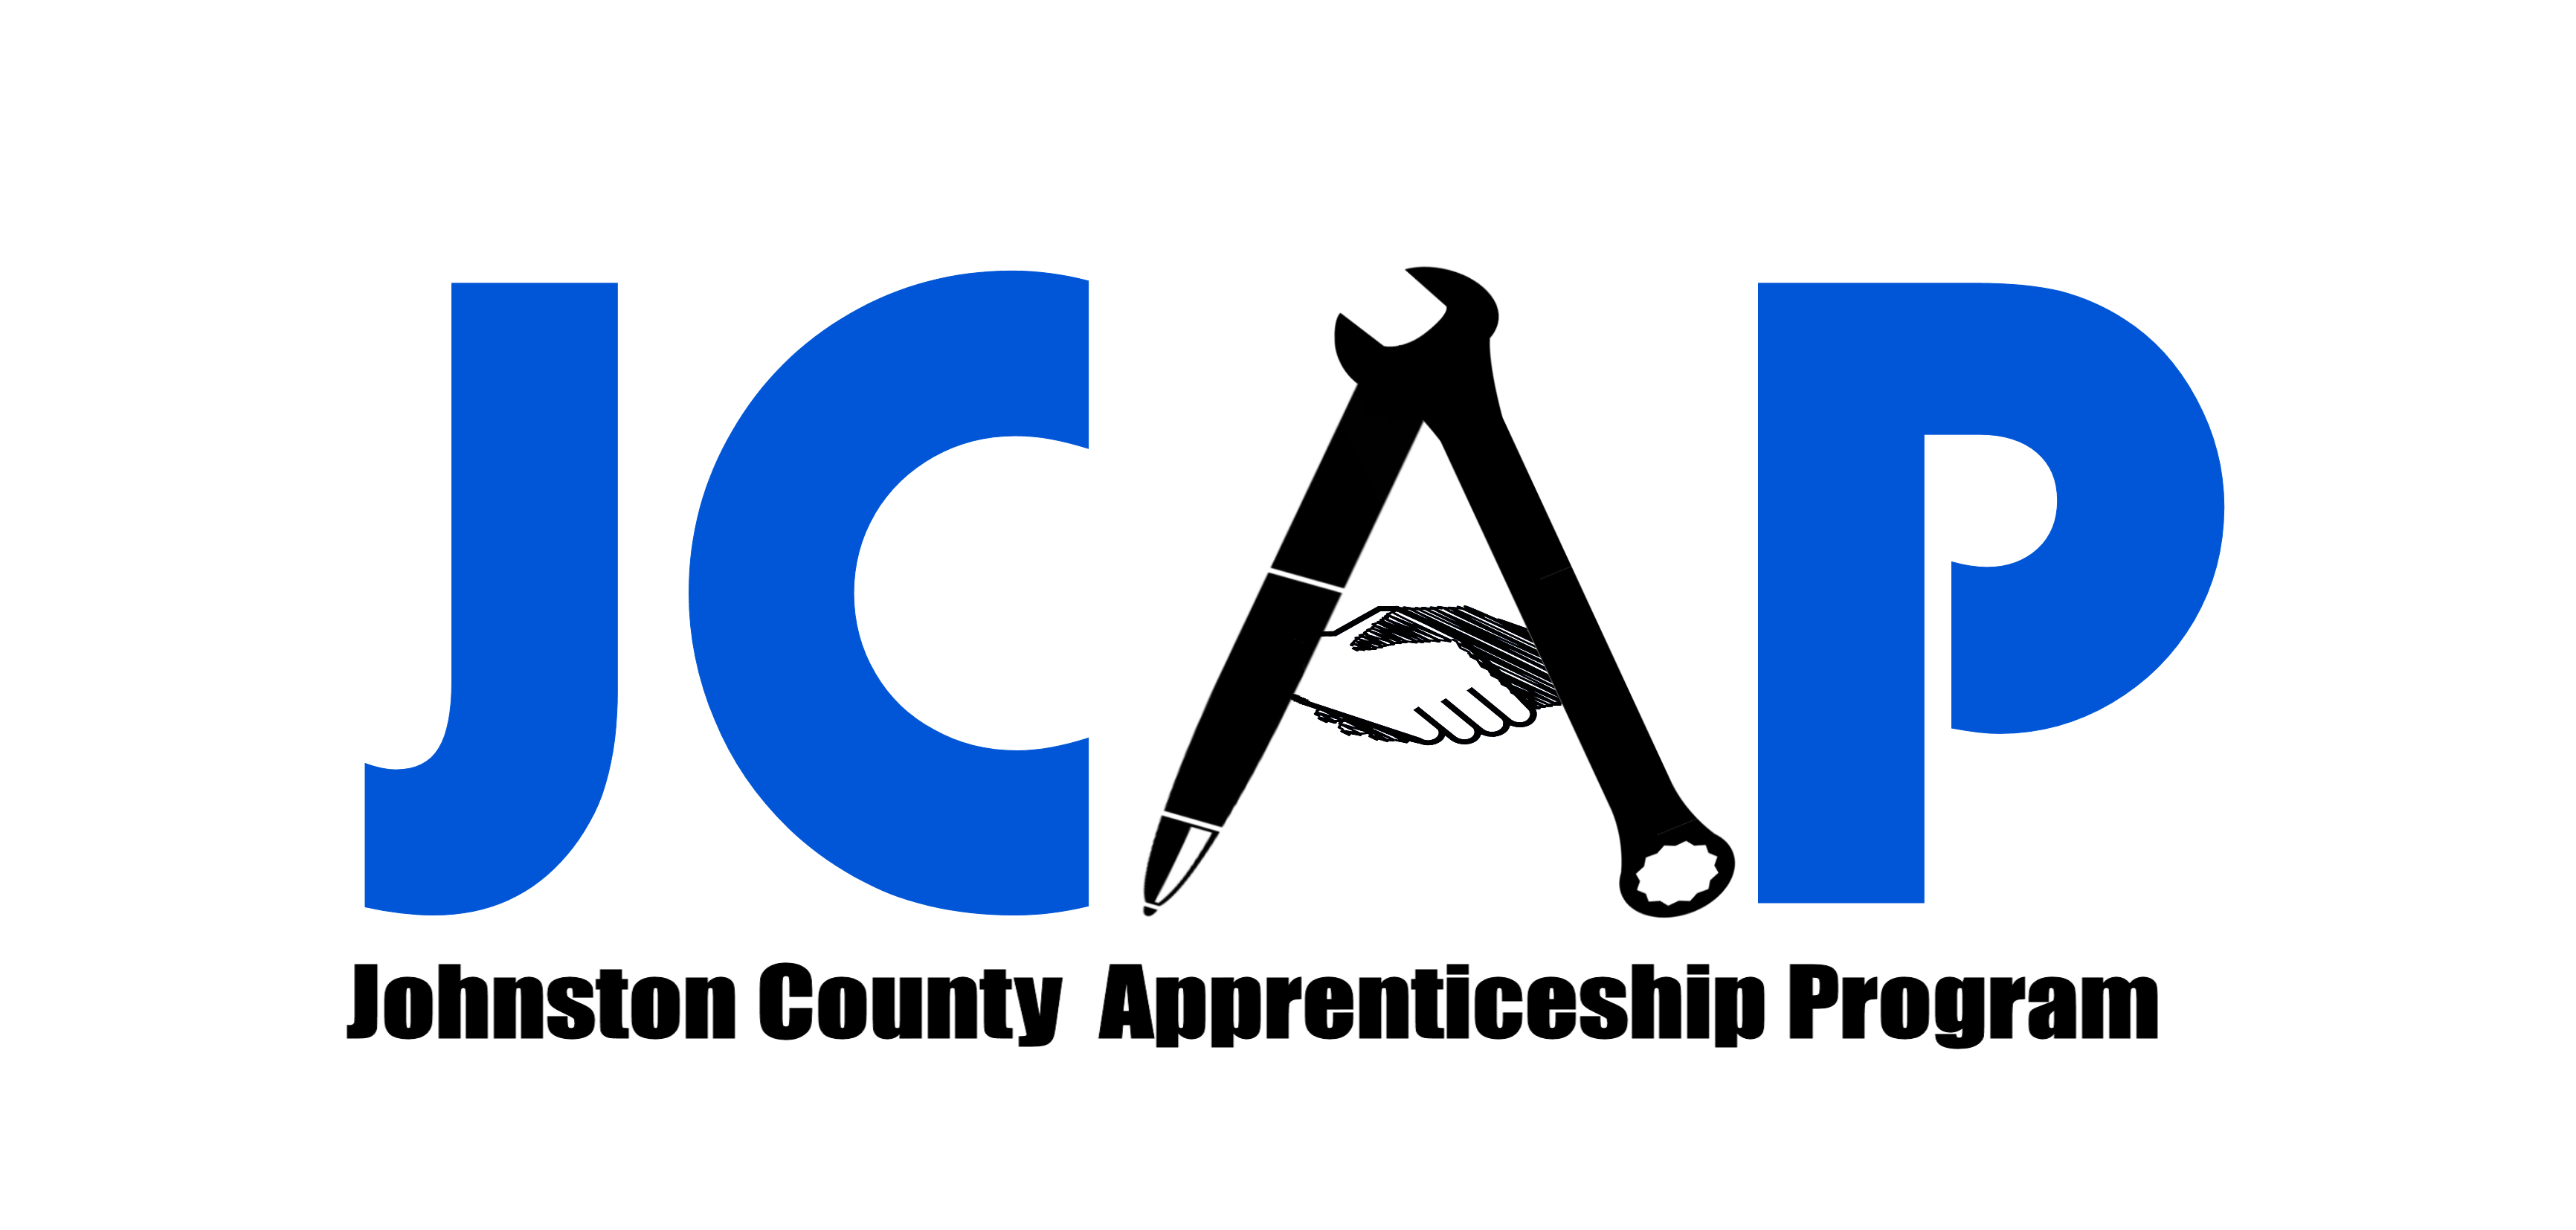 Apprenticeship Job Jcap Johnston County Apprenticeship Program